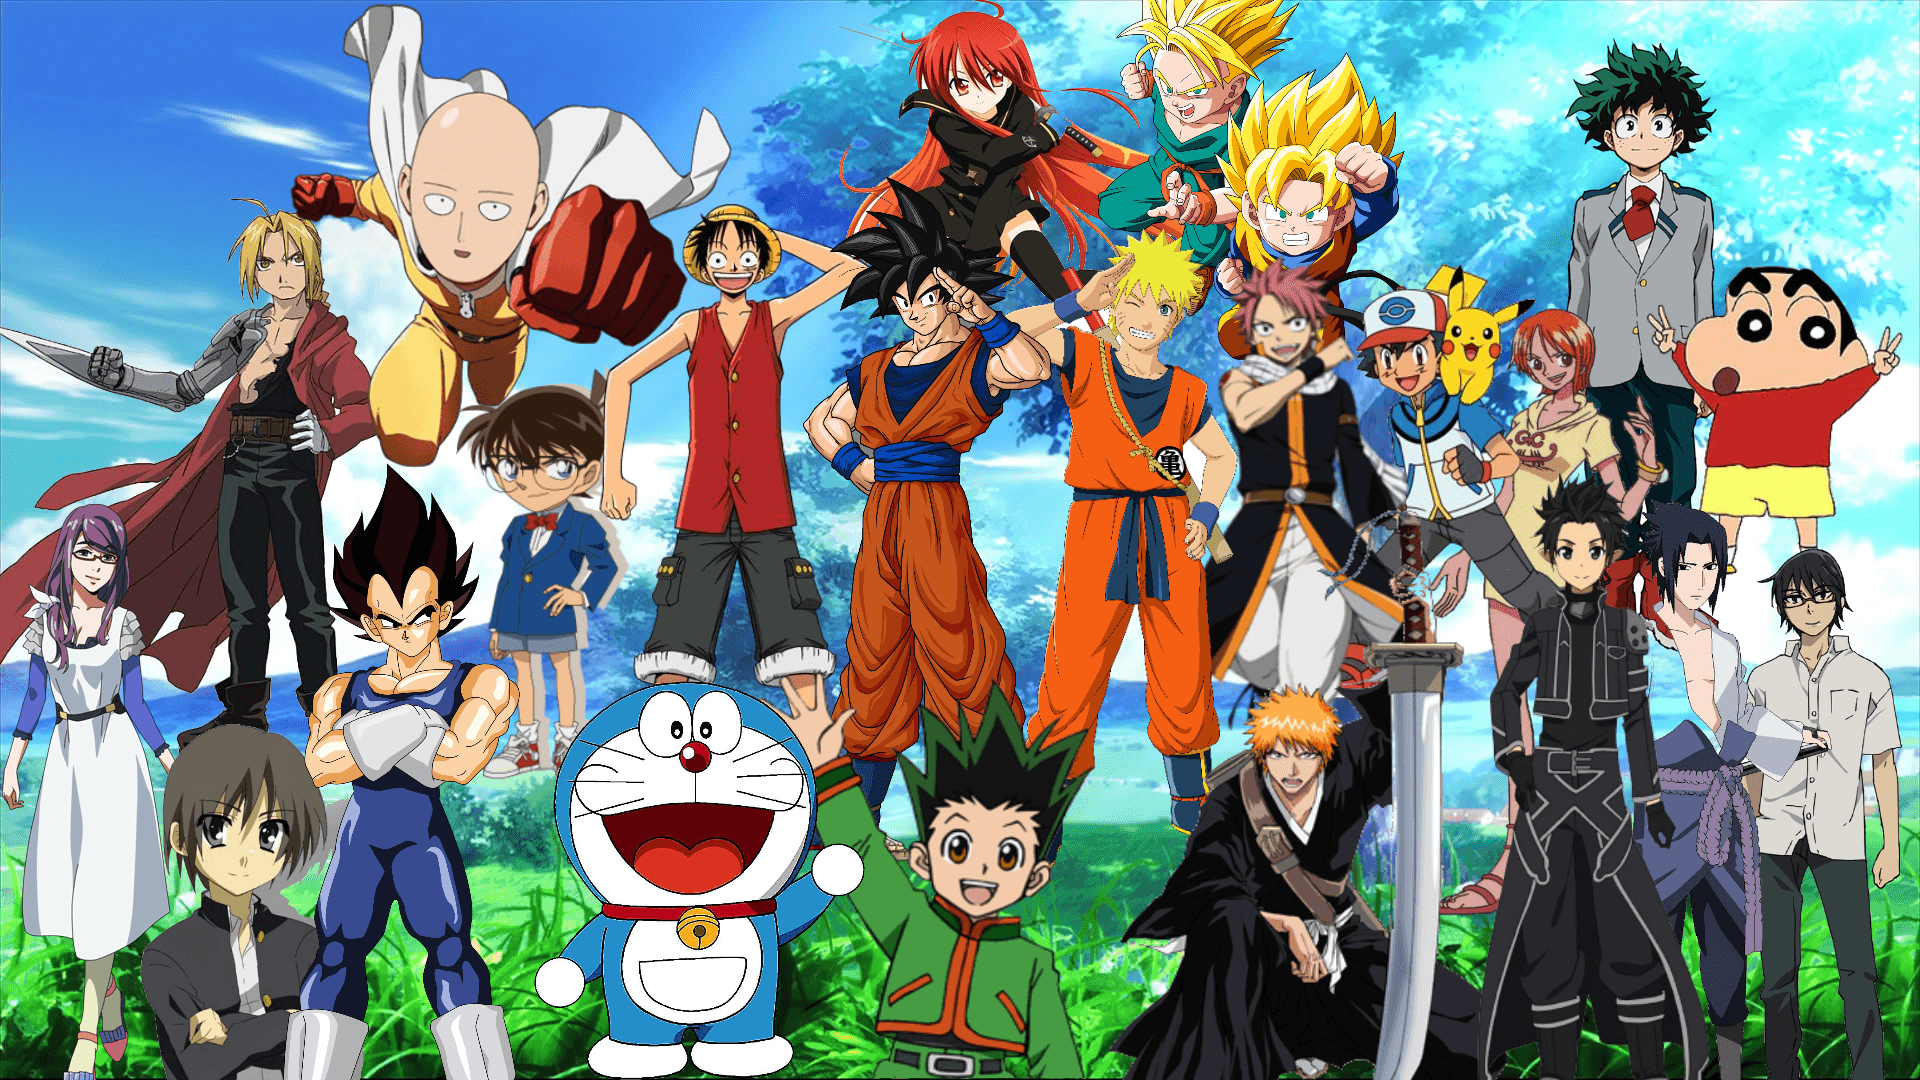 Anime Collage Wallpapers - Top Free Anime Collage ...